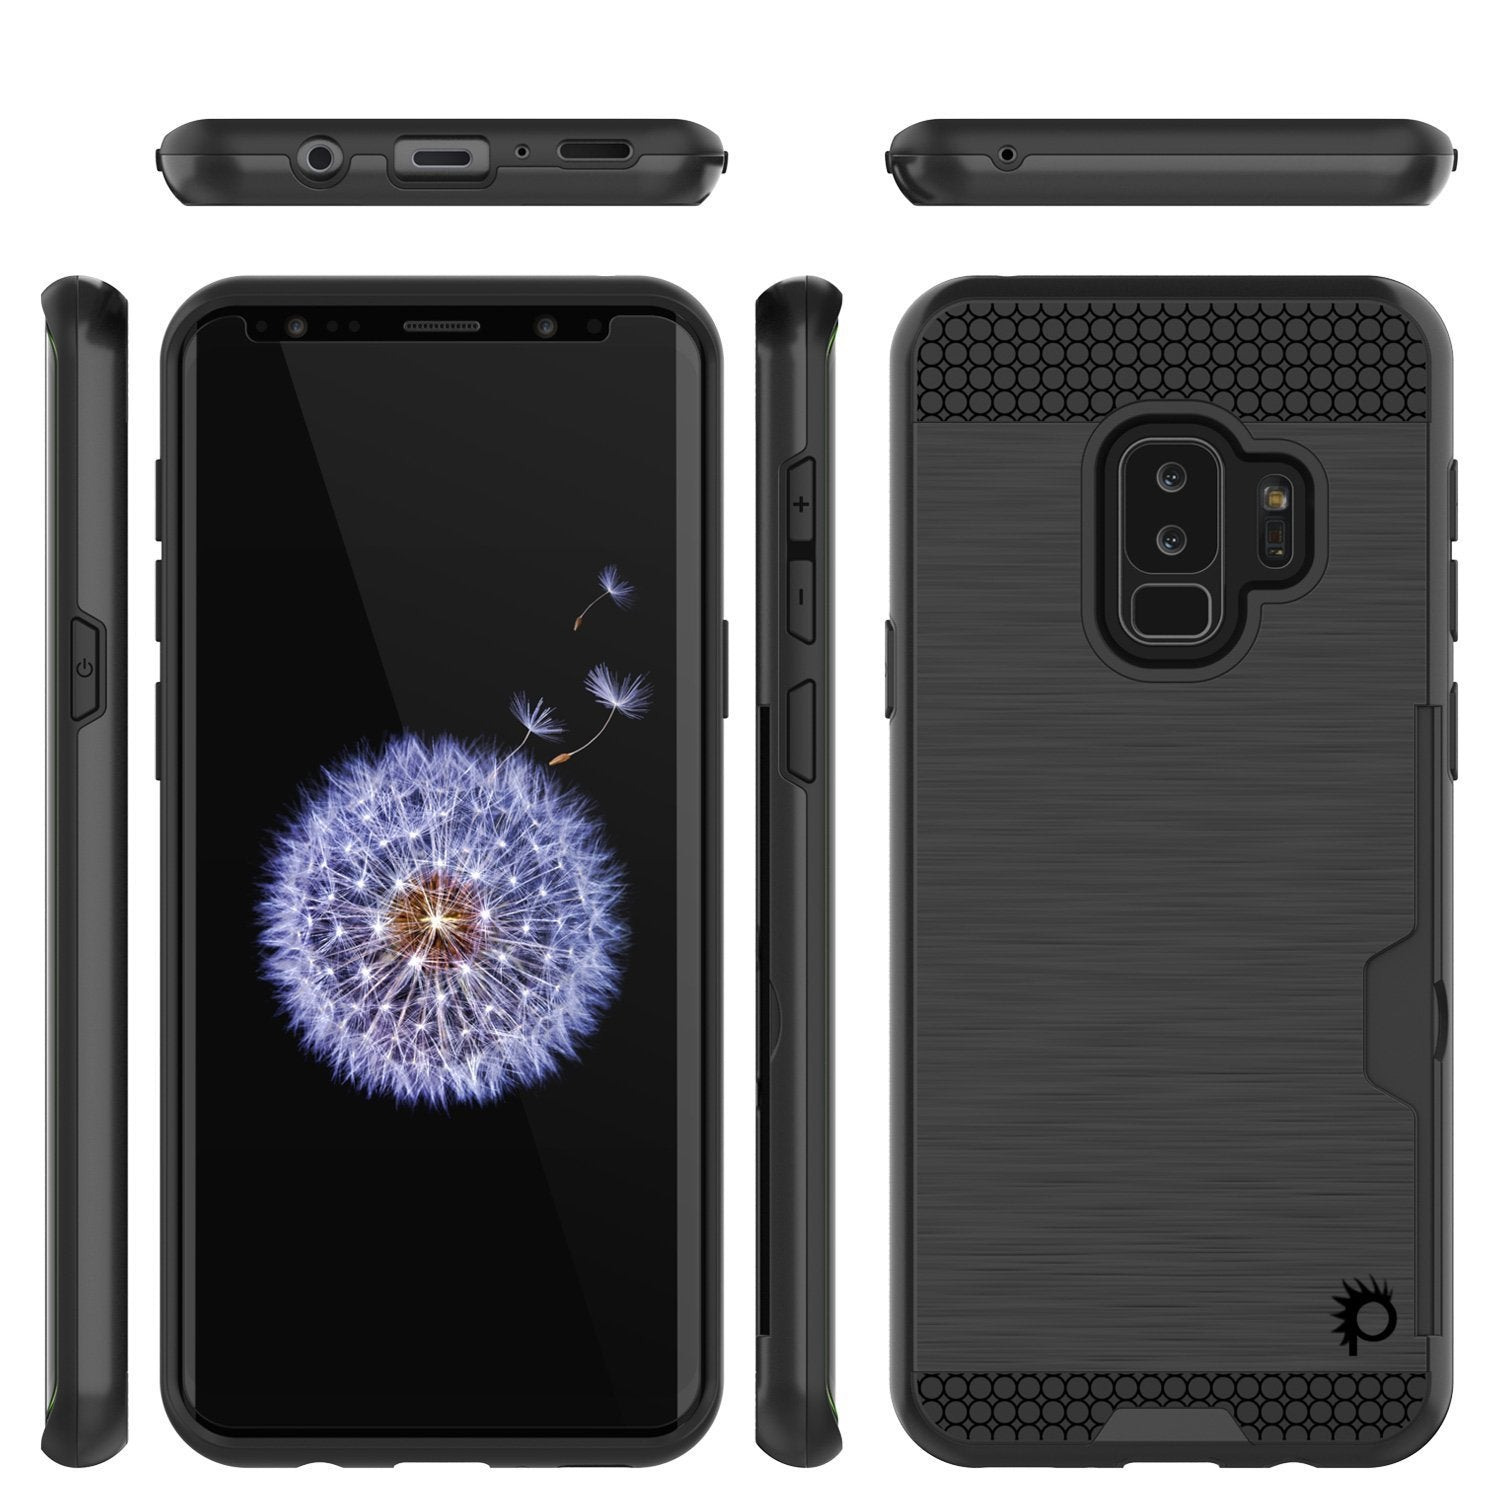 Galaxy S9 Plus Case, PUNKcase [SLOT Series] [Slim Fit] Dual-Layer Armor Cover w/Integrated Anti-Shock System, Credit Card Slot [Black]